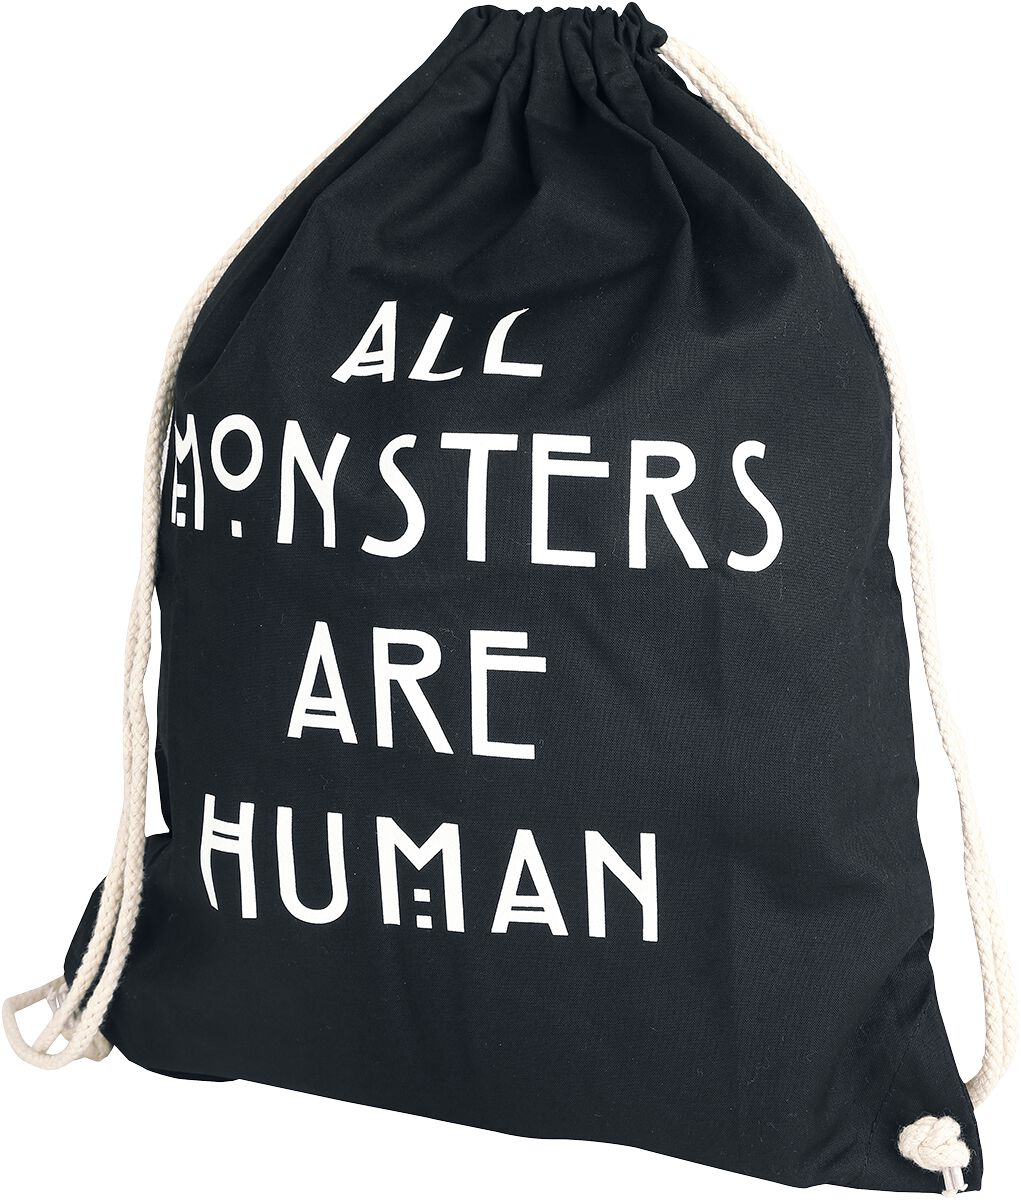 Image of American Horror Story All Monsters Are Human Turnbeutel schwarz